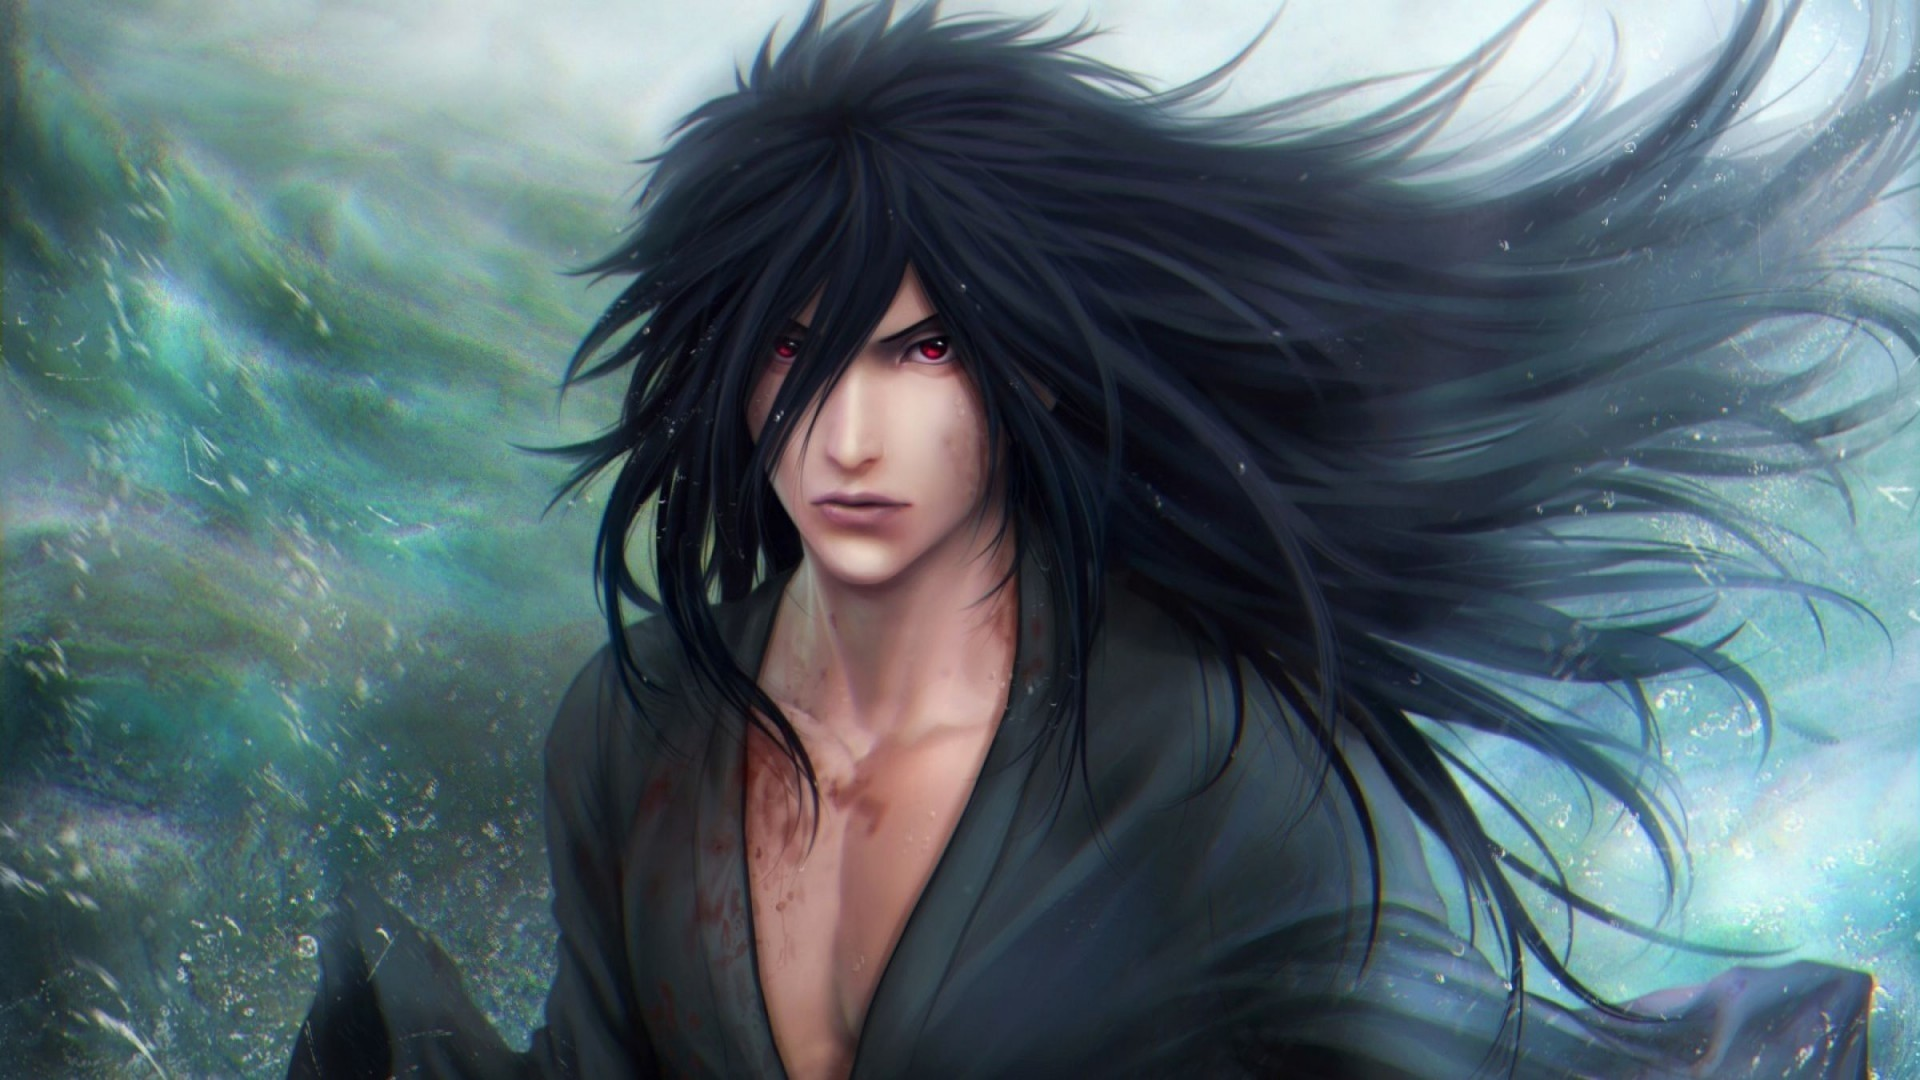 Anime Guy With Black Hair Background